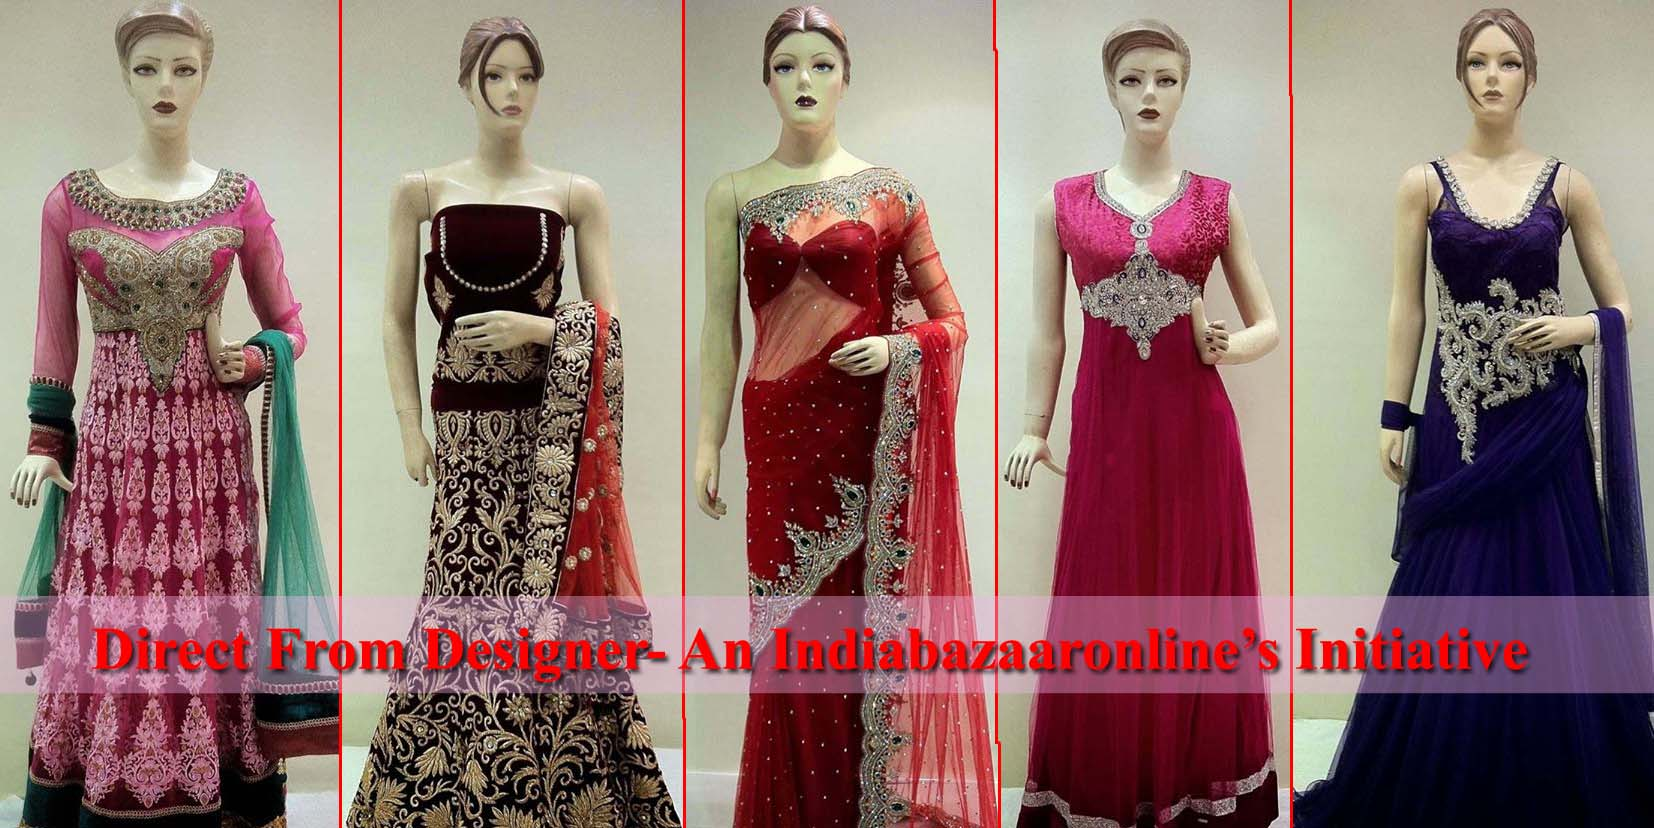 direct from designer an initiative by indiabazaaronline